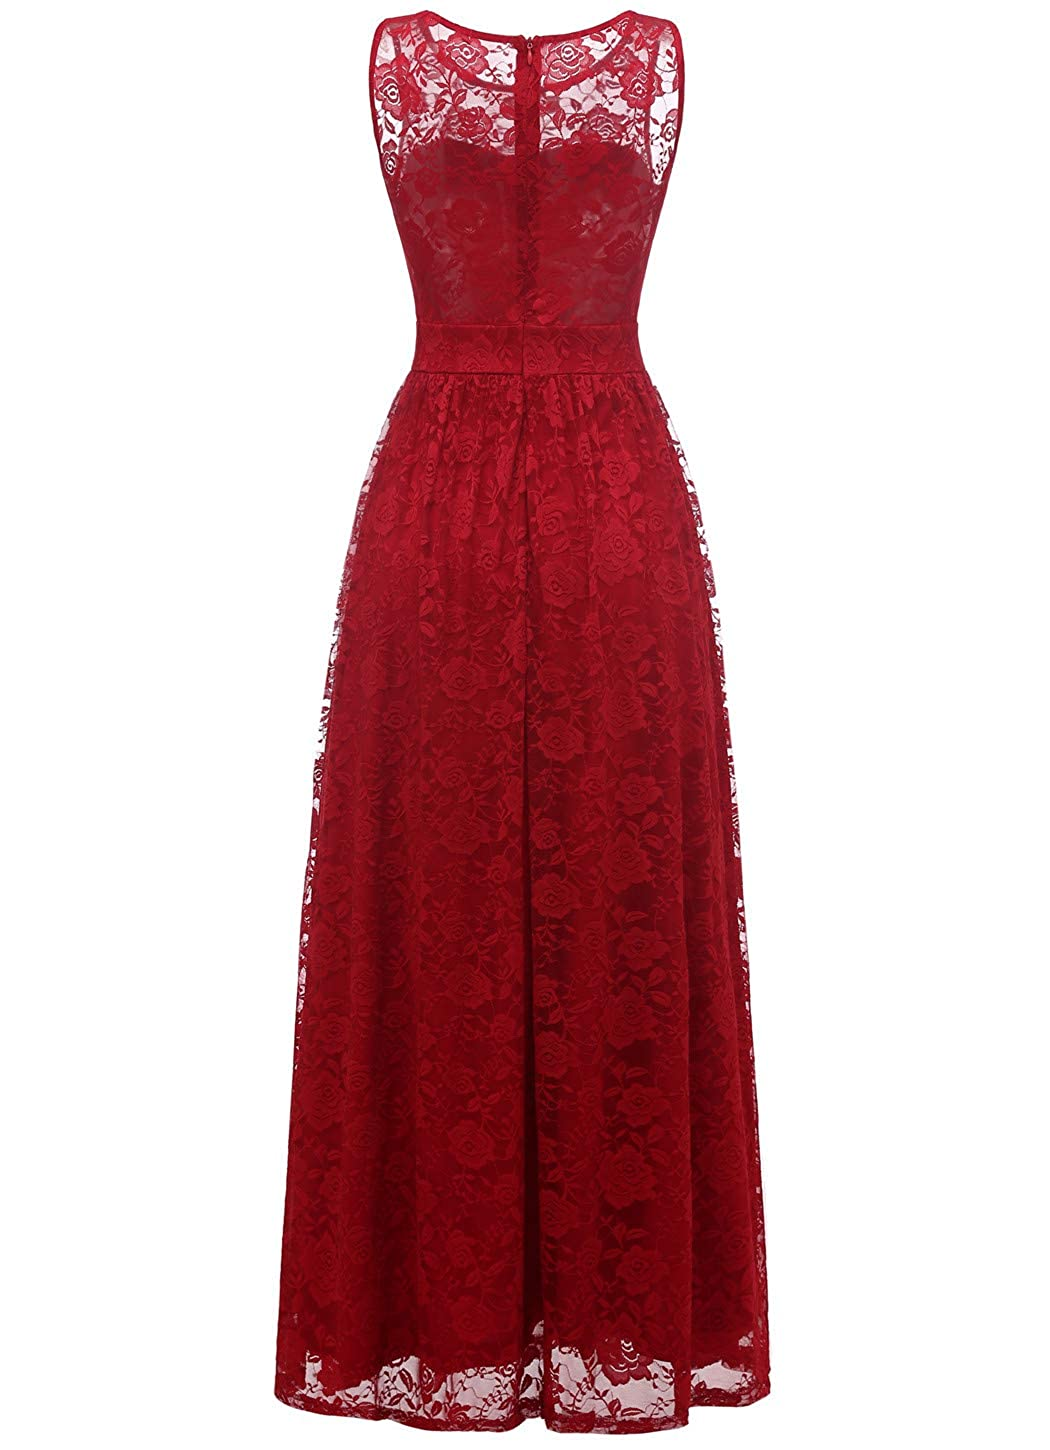 Wedtrend Womens Floral Lace Long Bridesmaid Dress Party Gown